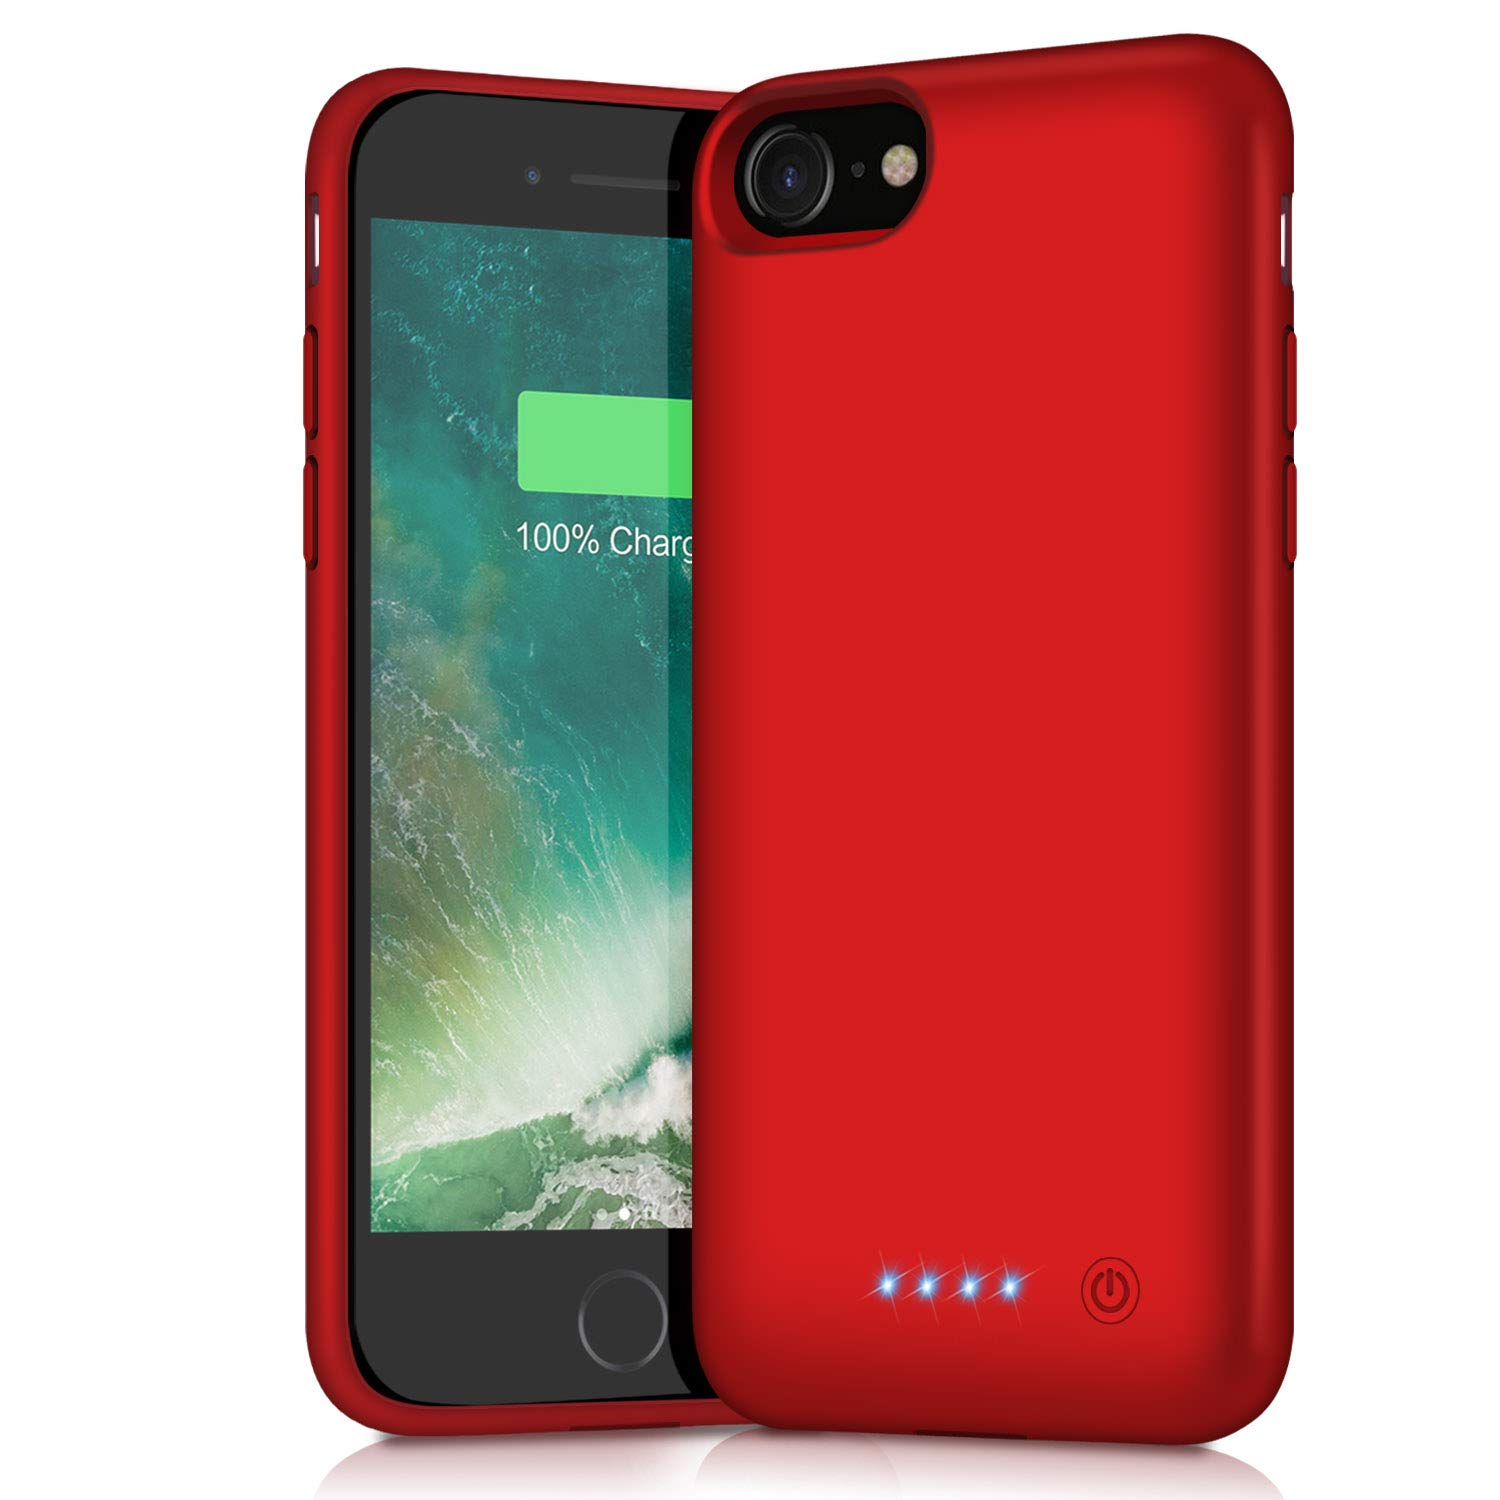 Battery Case for iPhone 8/7, 6000mAh Portable Rechargeable Battery Pack Charger Case for Apple iPhone 8 iPhone 7 [4.7 Inch] Extended Charging Case Protective  Power Bank Backup Cover - Red Pxwaxpy